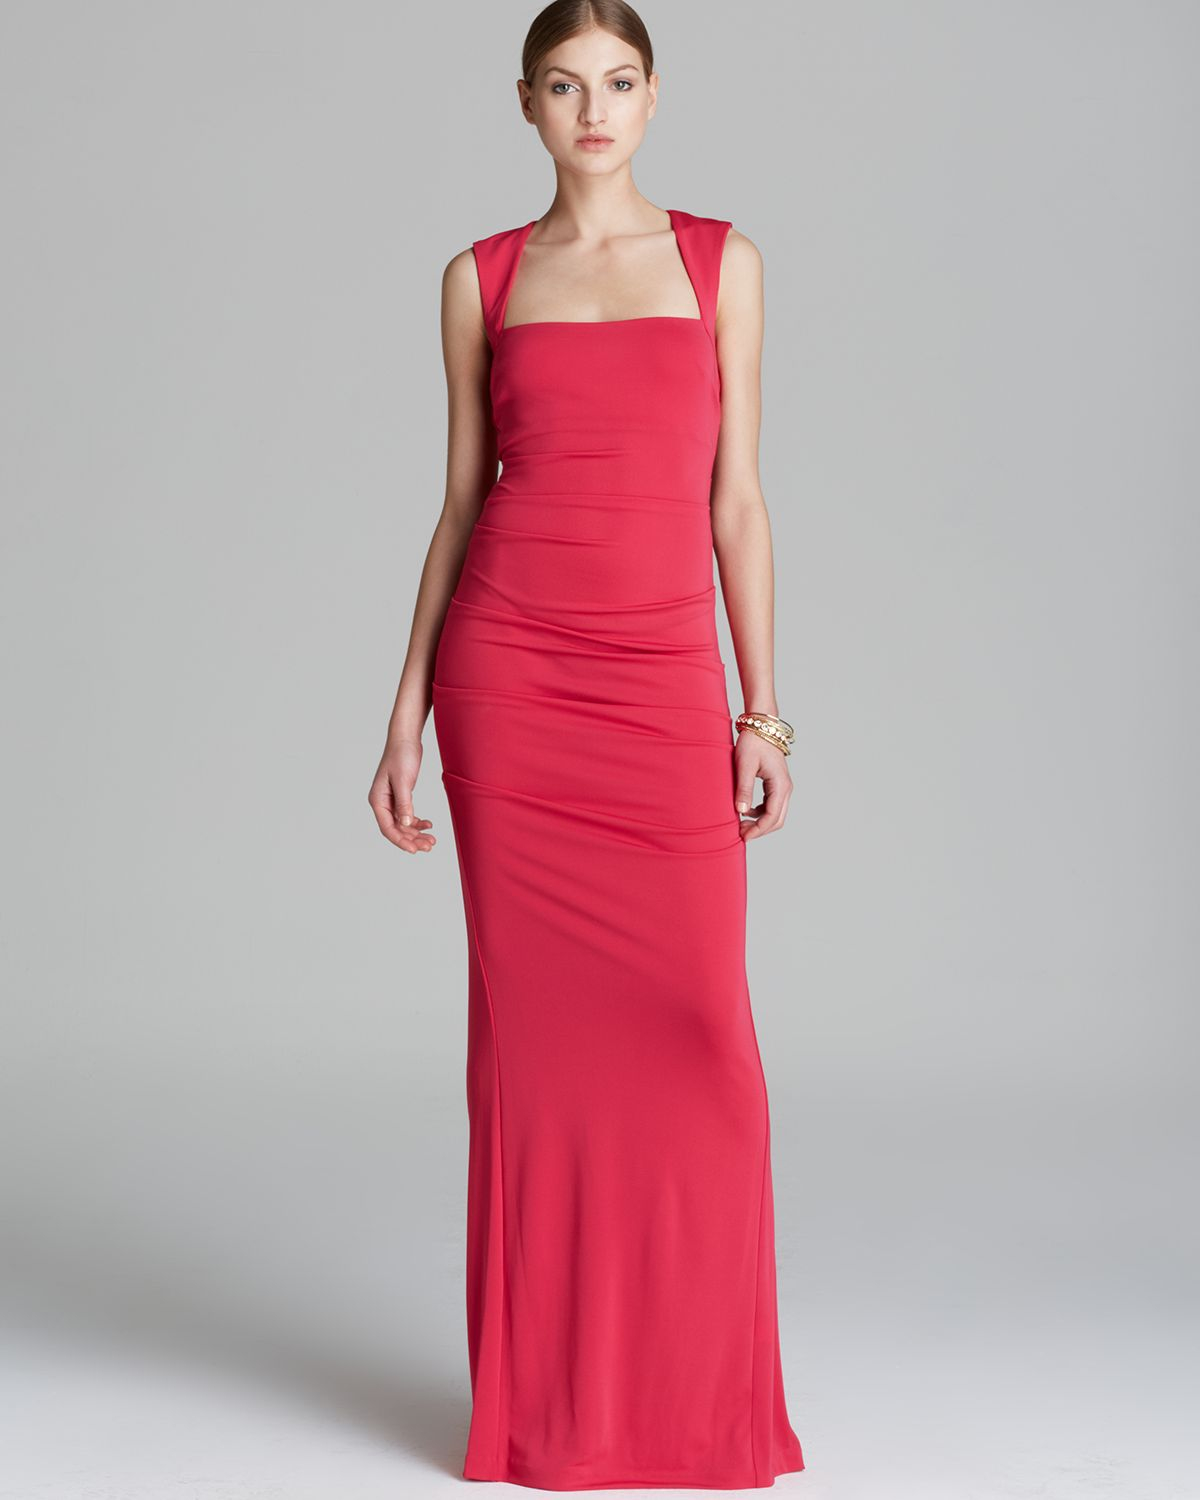 Lyst - Nicole Miller Gown Cap Sleeve Open Back in Red